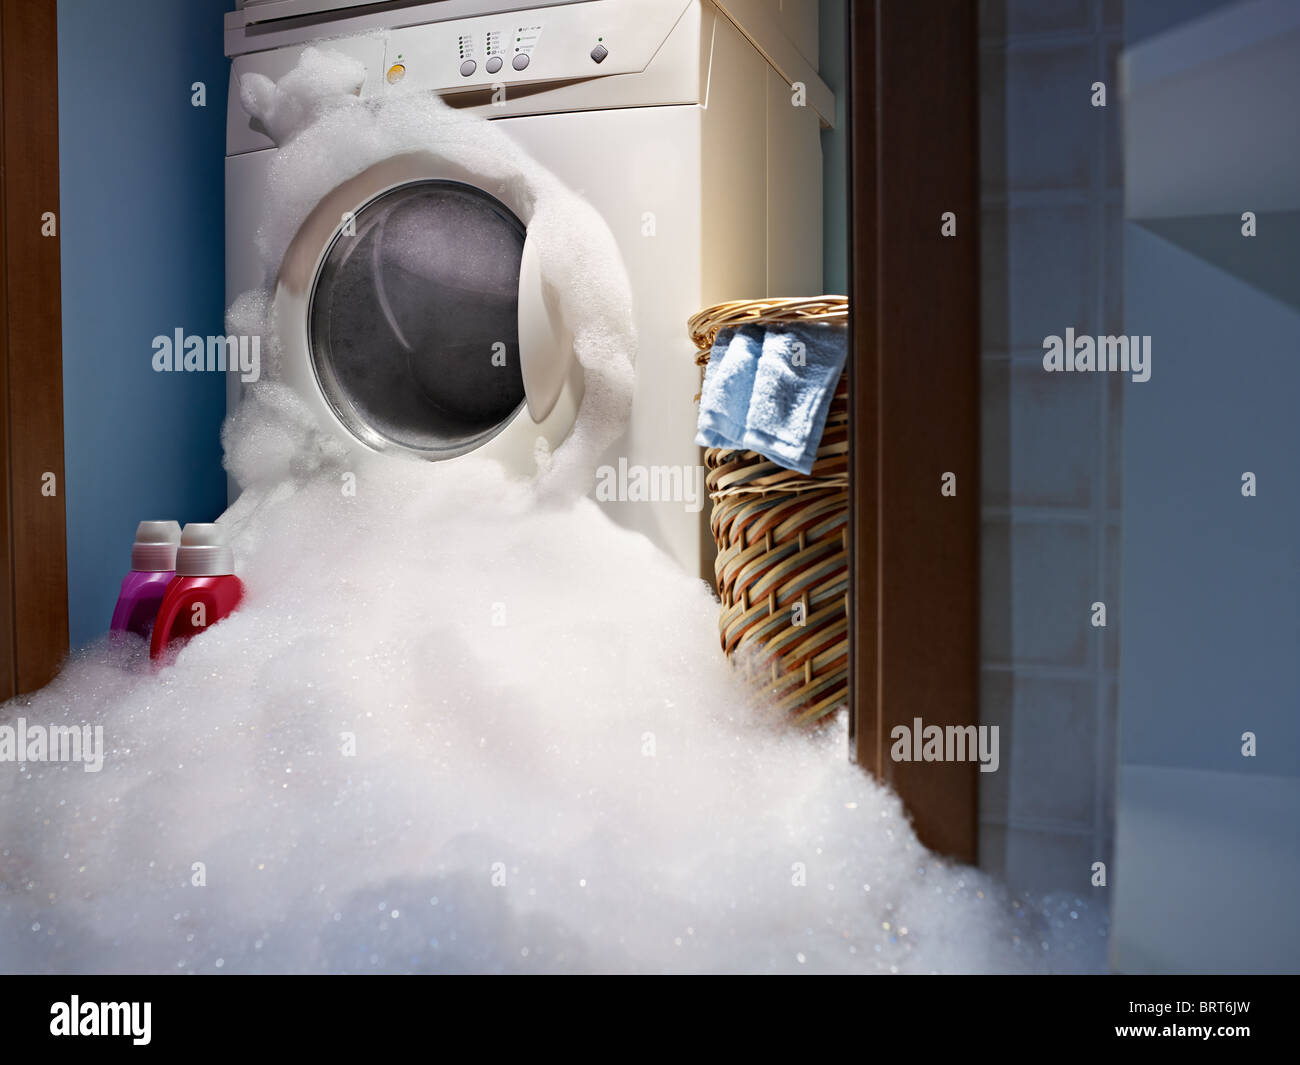 soap coming out from broken washing machine. - Stock Image